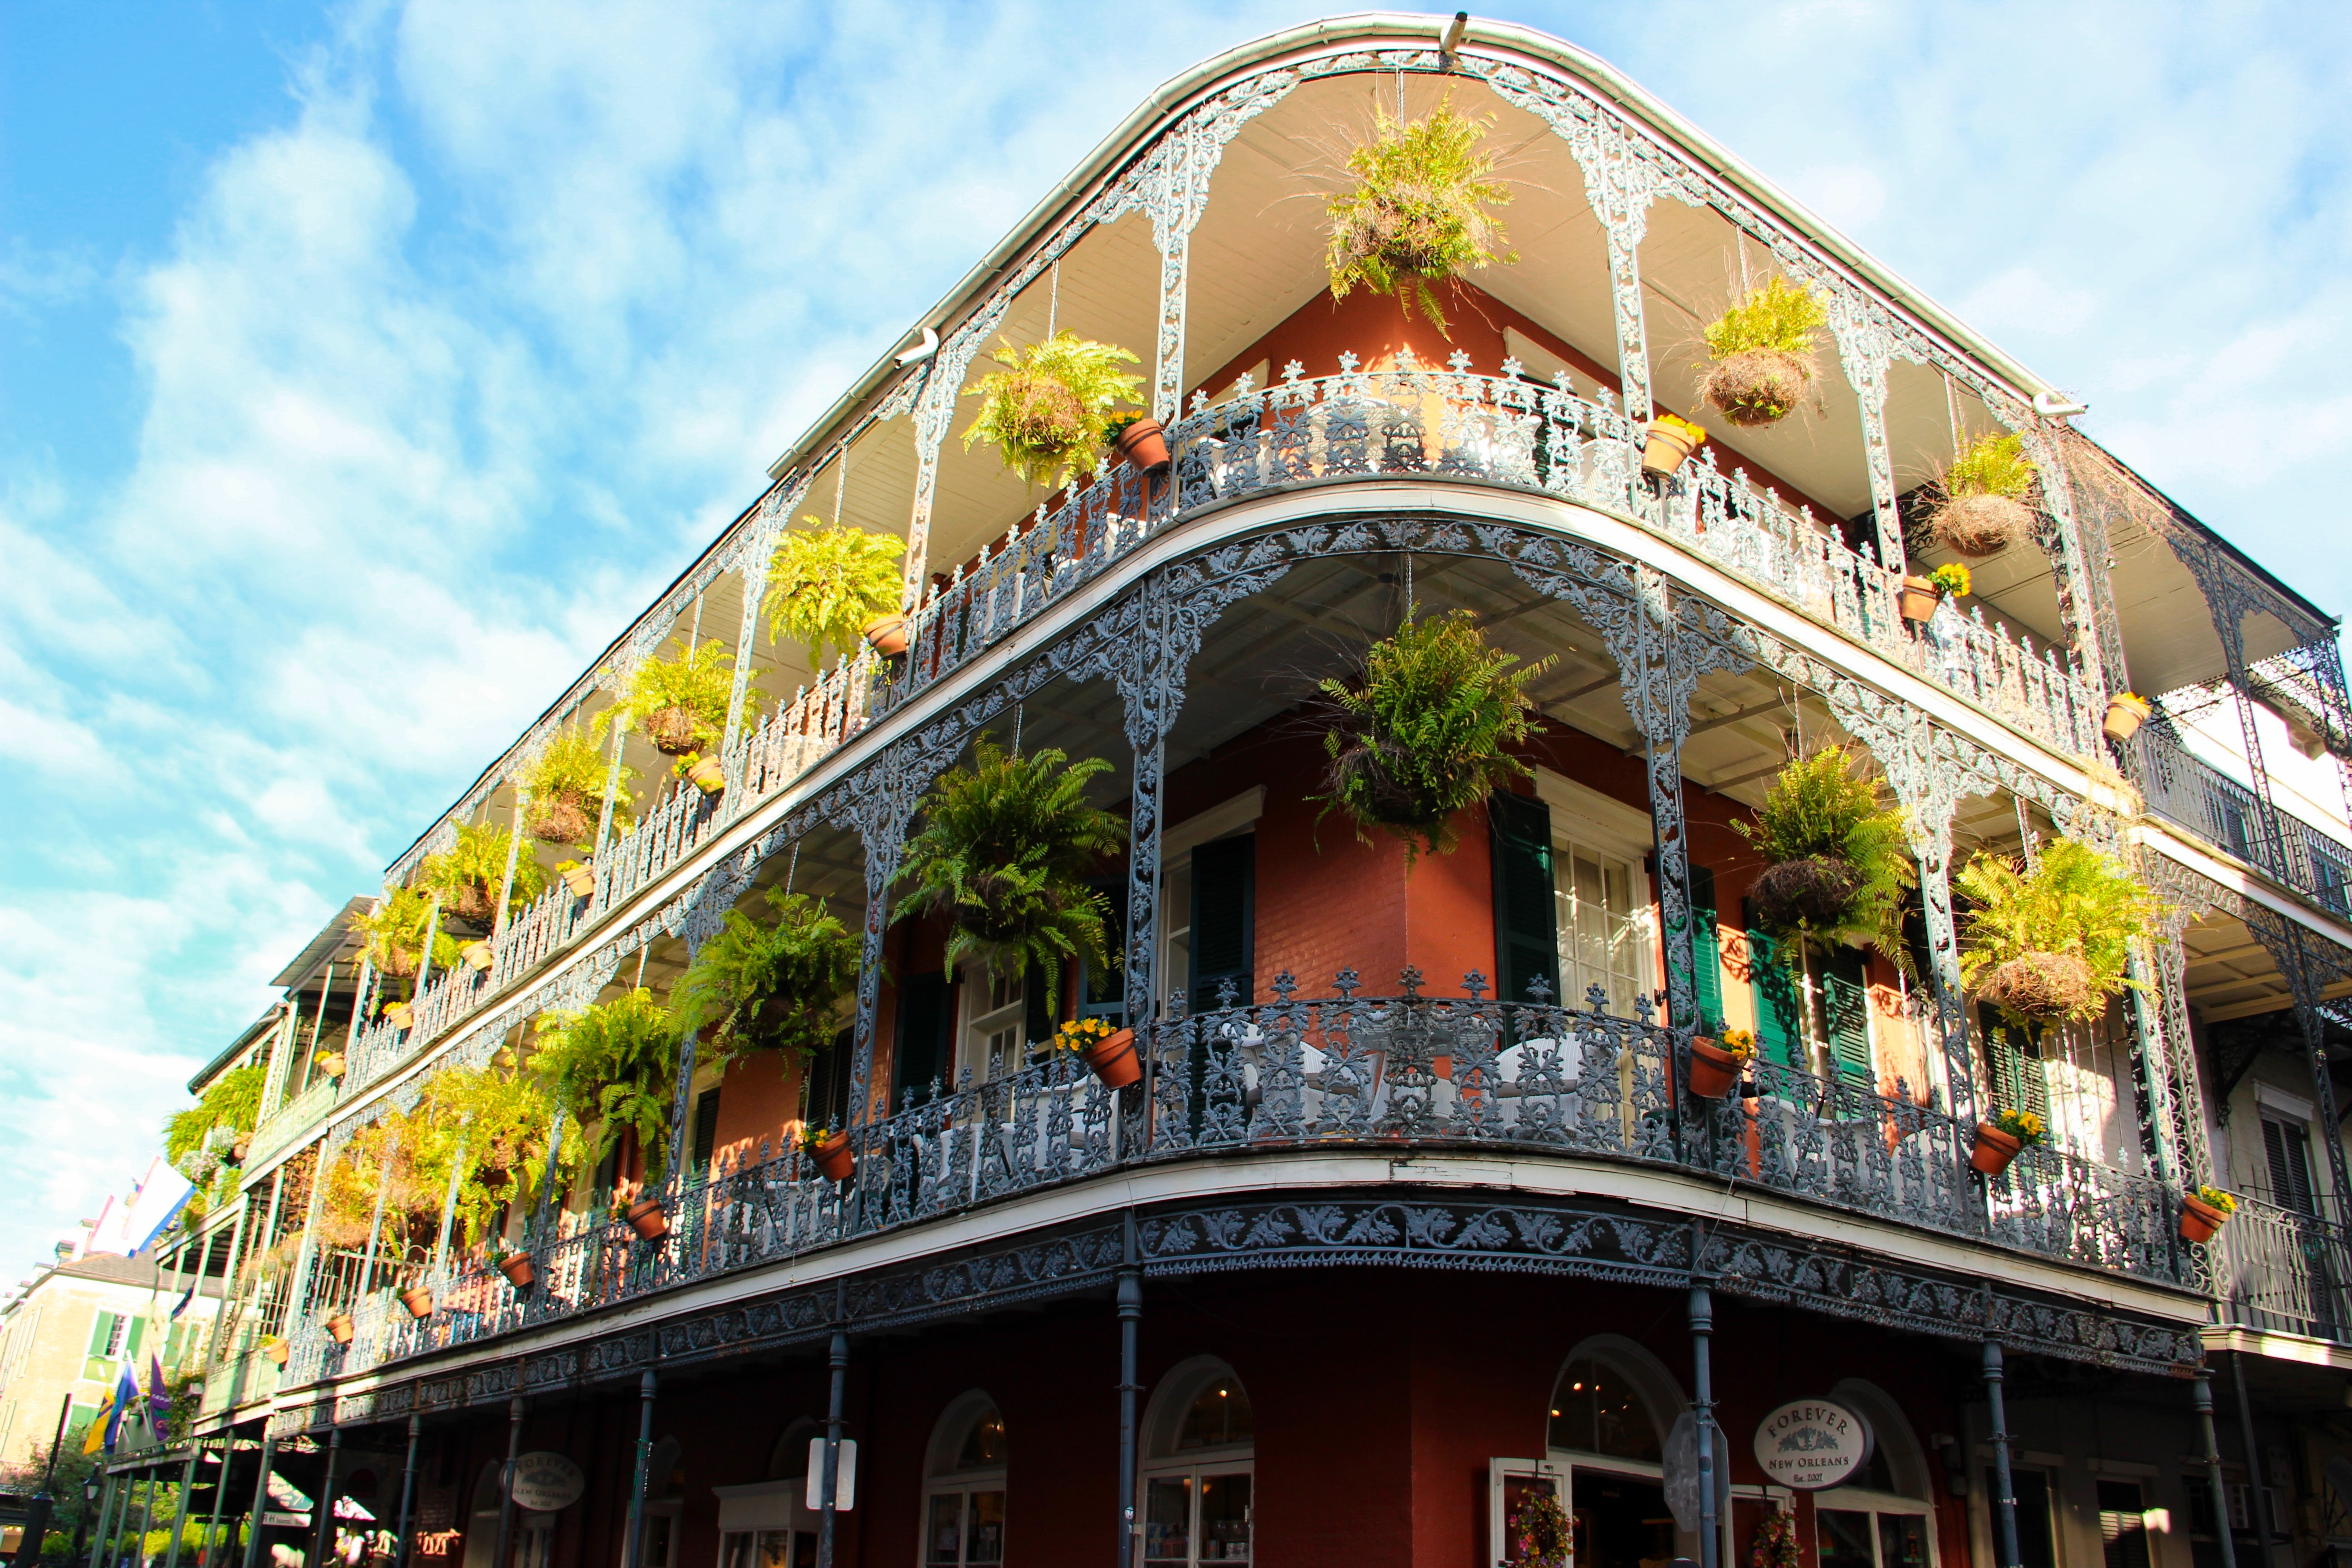 Colorful building corning in New Orleans.